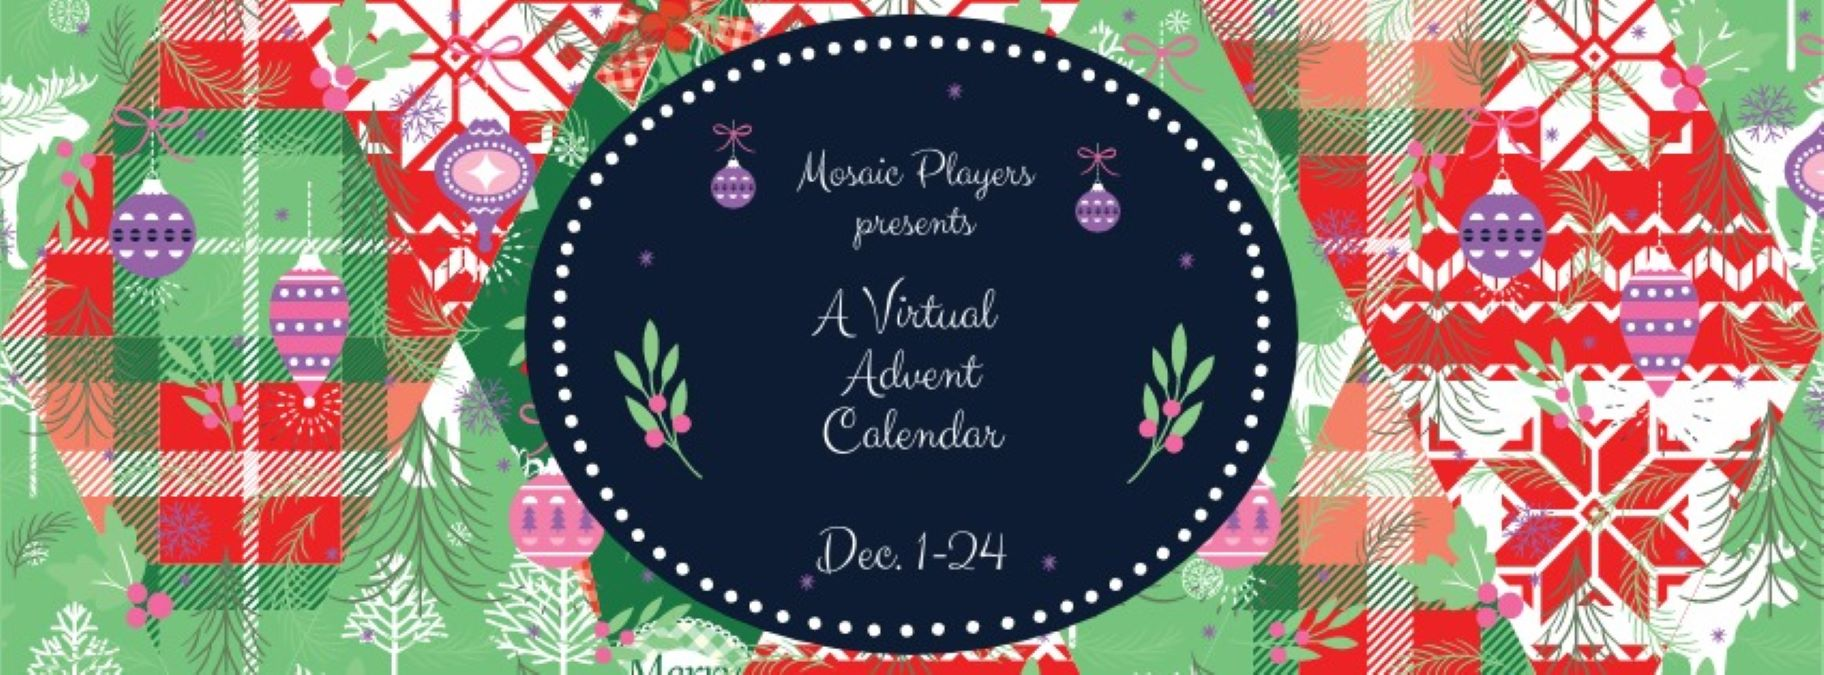 Virtual Advent Calendar with Antioch's Mosaic Players